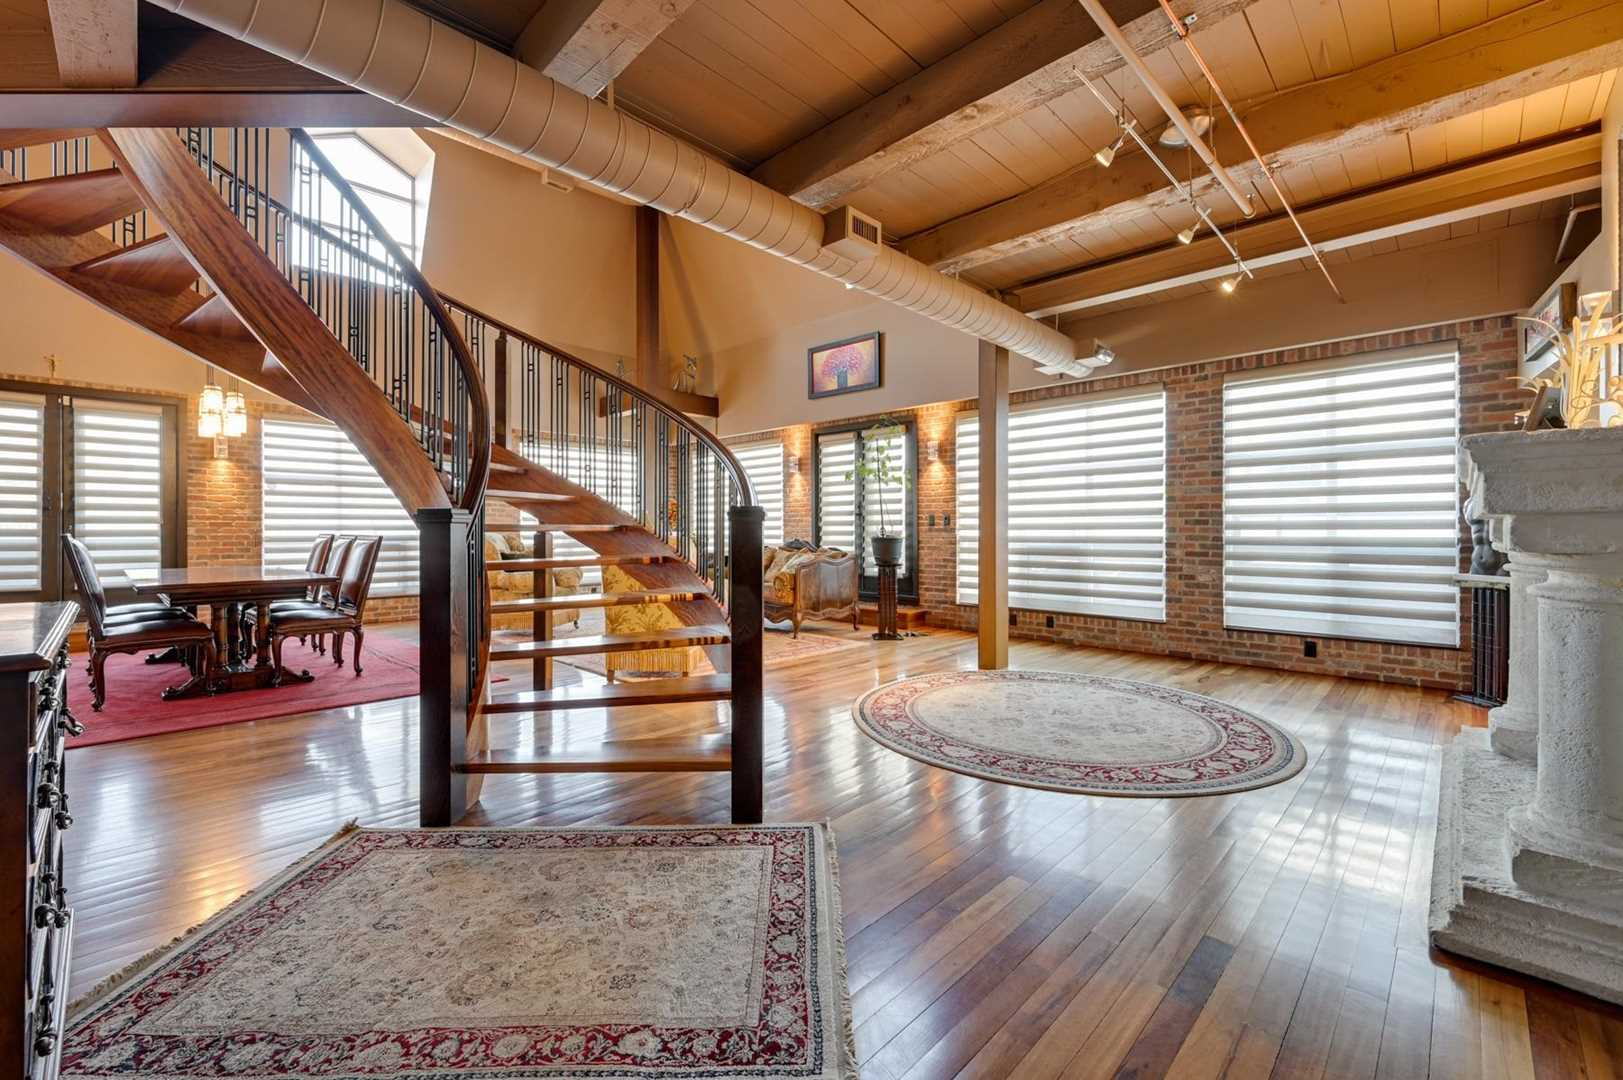 Interior condo entrance, tiger wood floor, brick walls and beige open ceiling; large windows along walls; area rug in front of circular staircase on right; white fireplace mantle on left